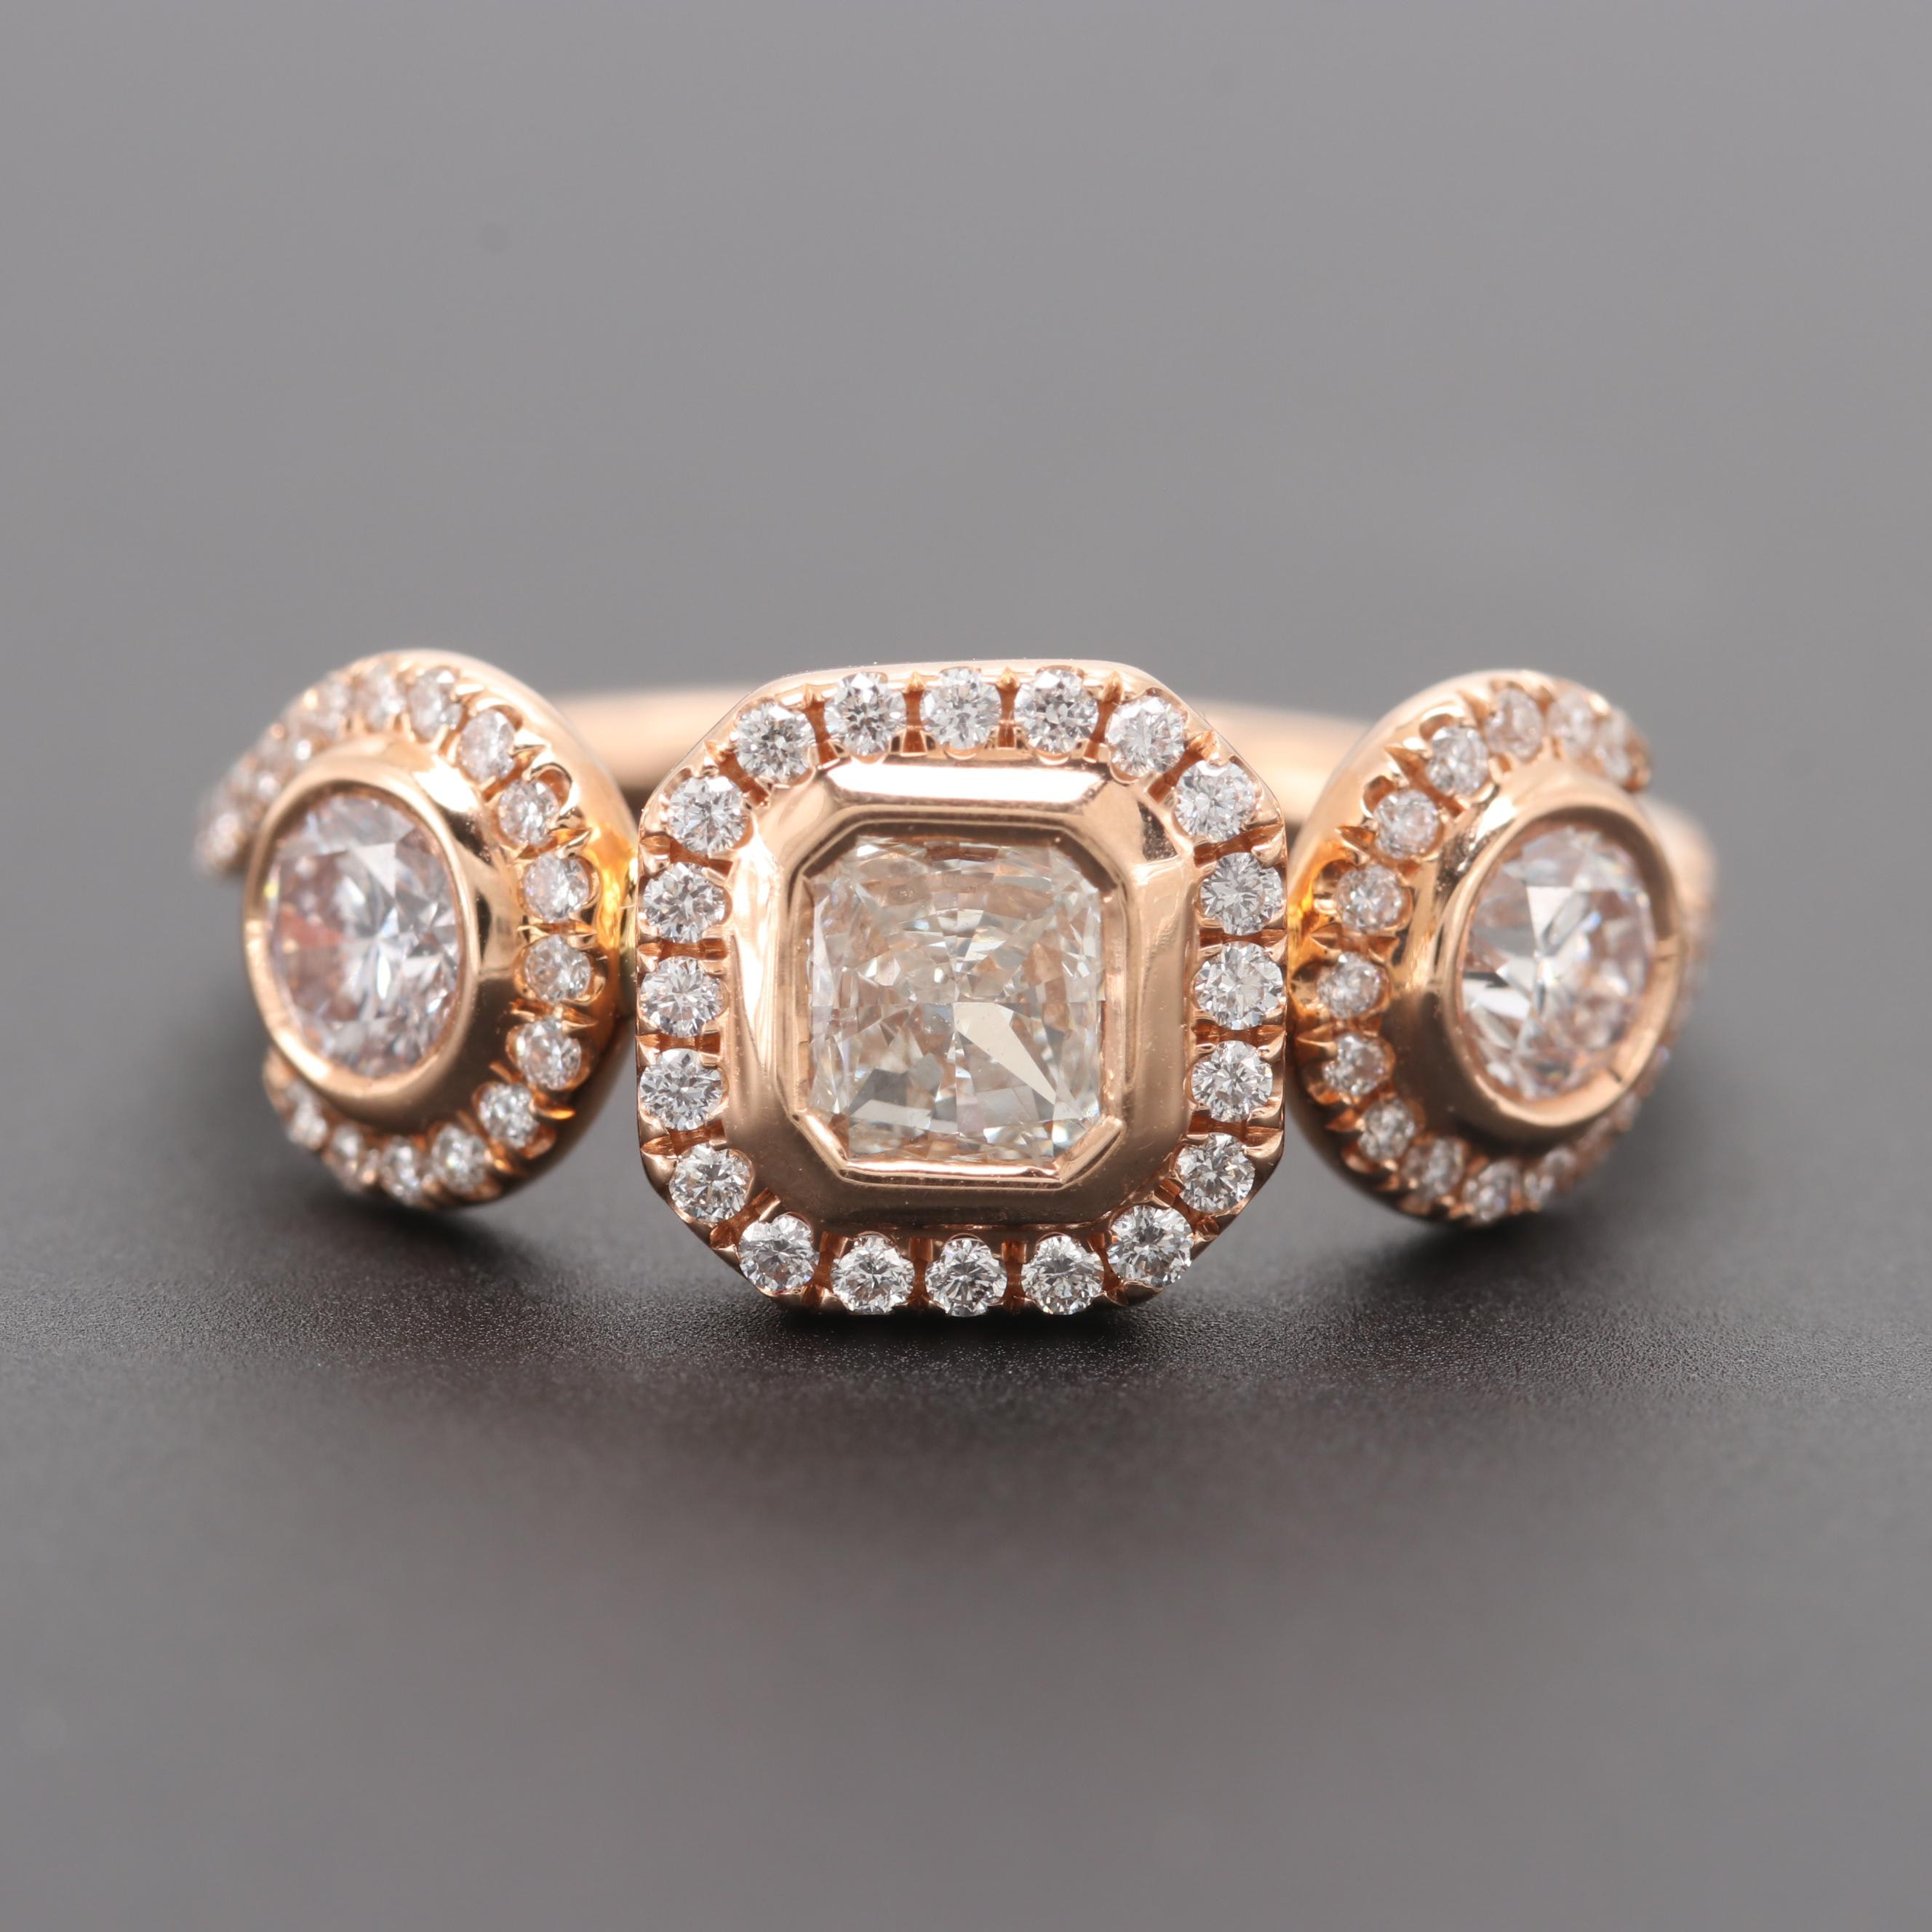 18K Rose Gold 1.04 CTW Diamond Ring